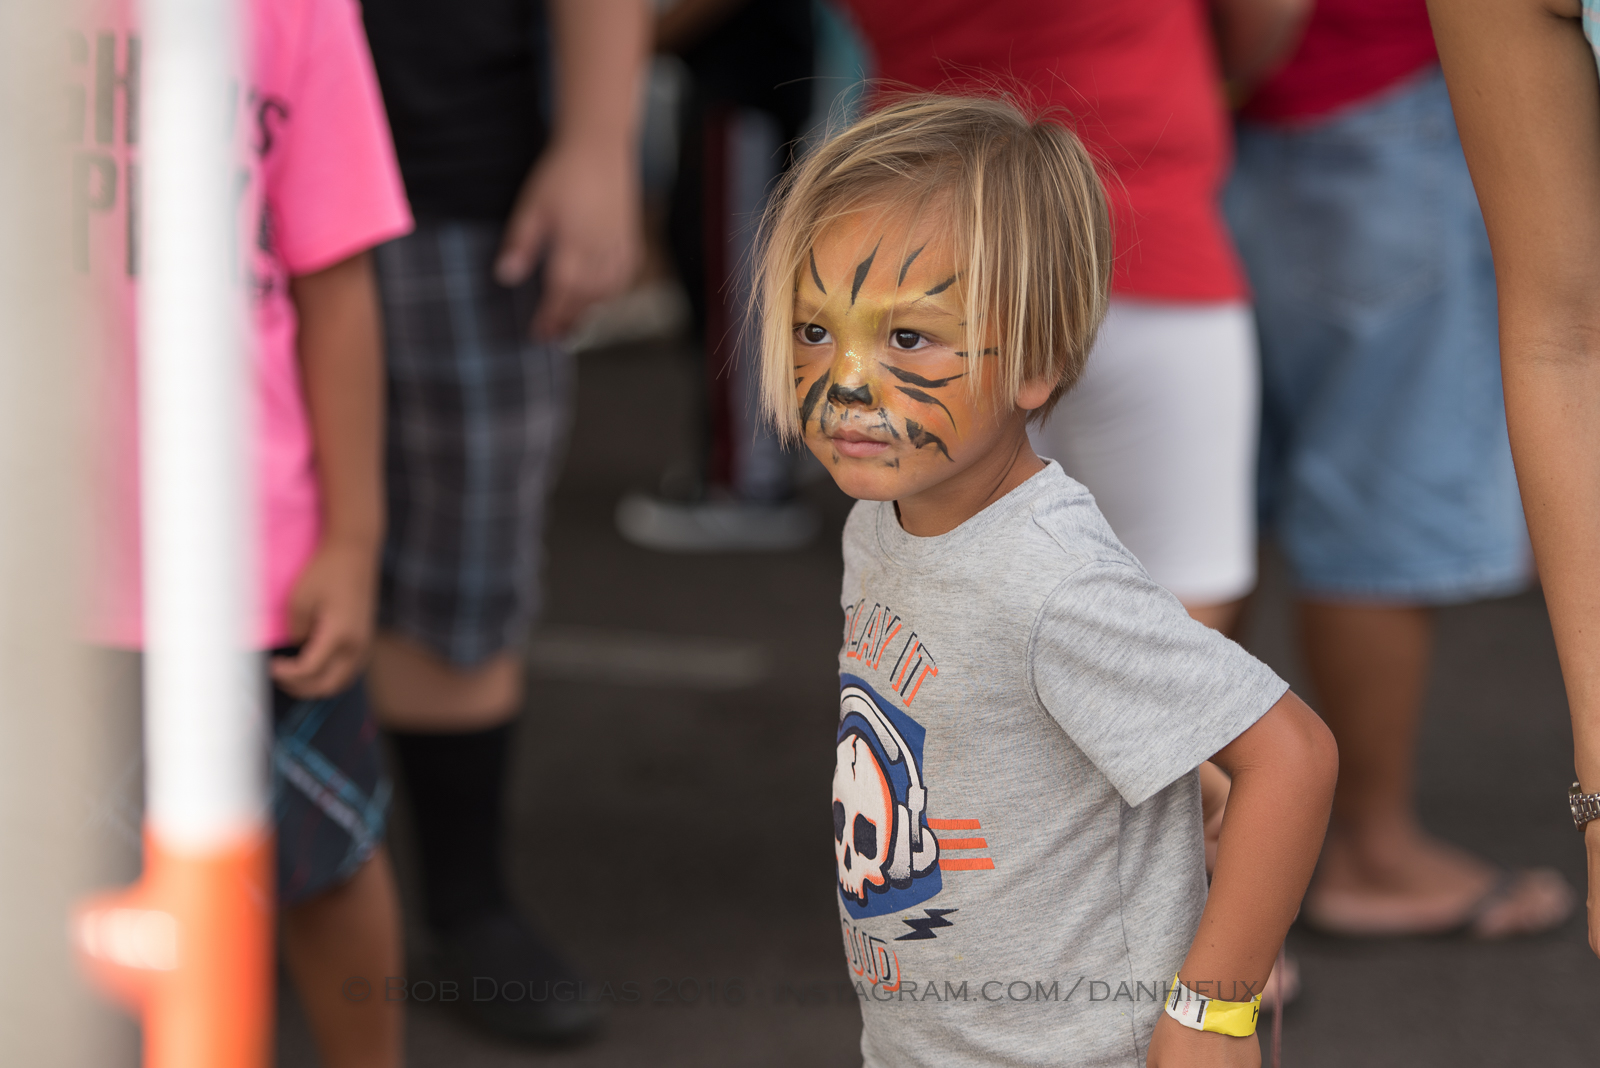 Kid with face paint like a cat.